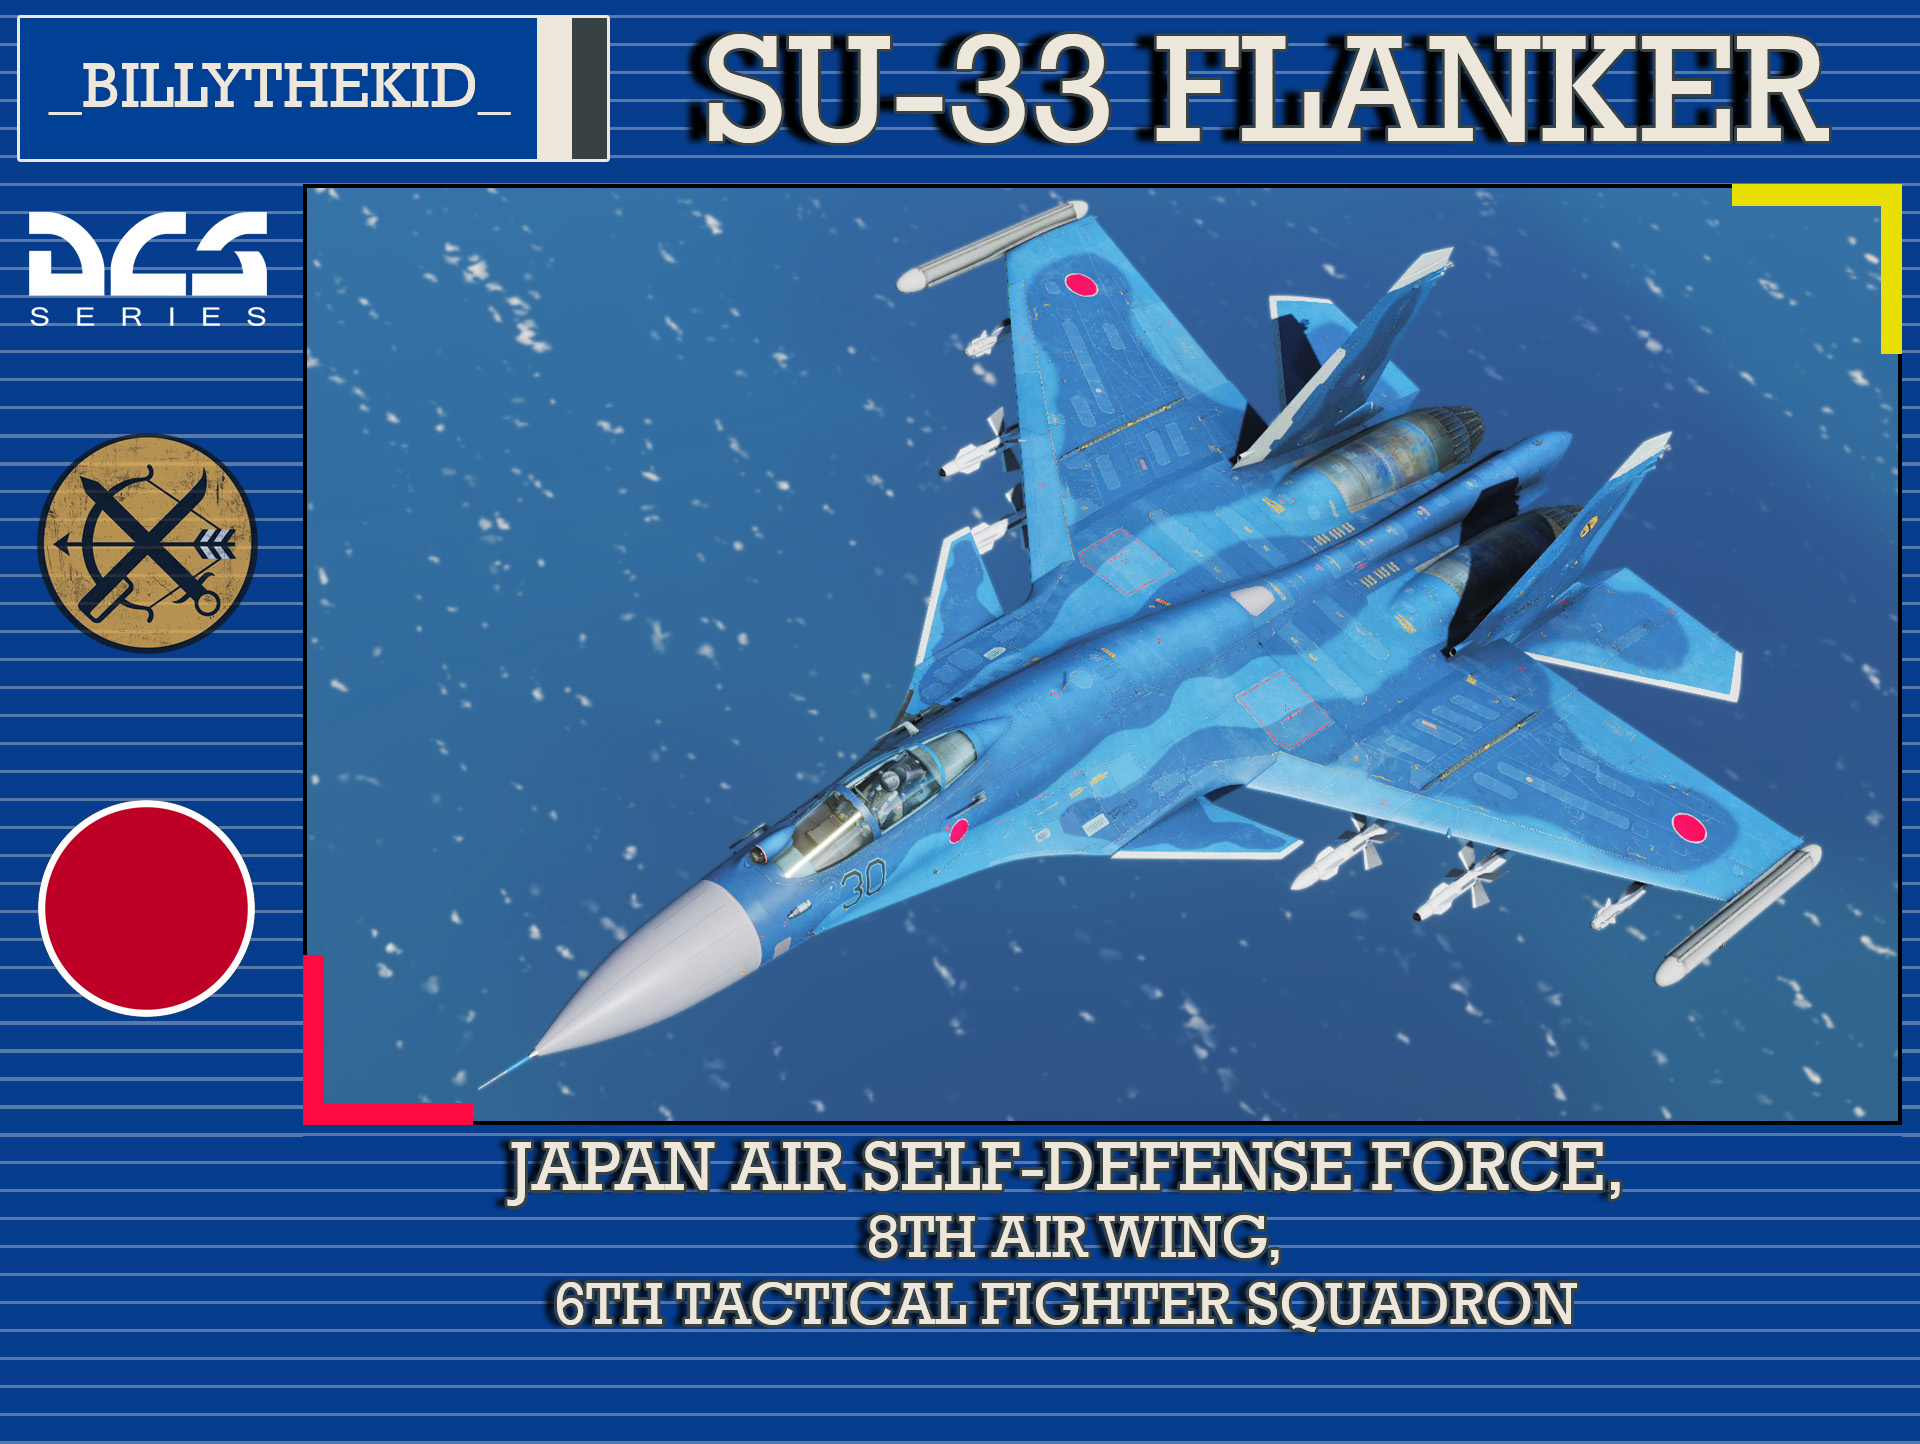 Fictional JASDF 8th Air Wing, 6th Tactical Fighter Squadron SU-33 Flanker